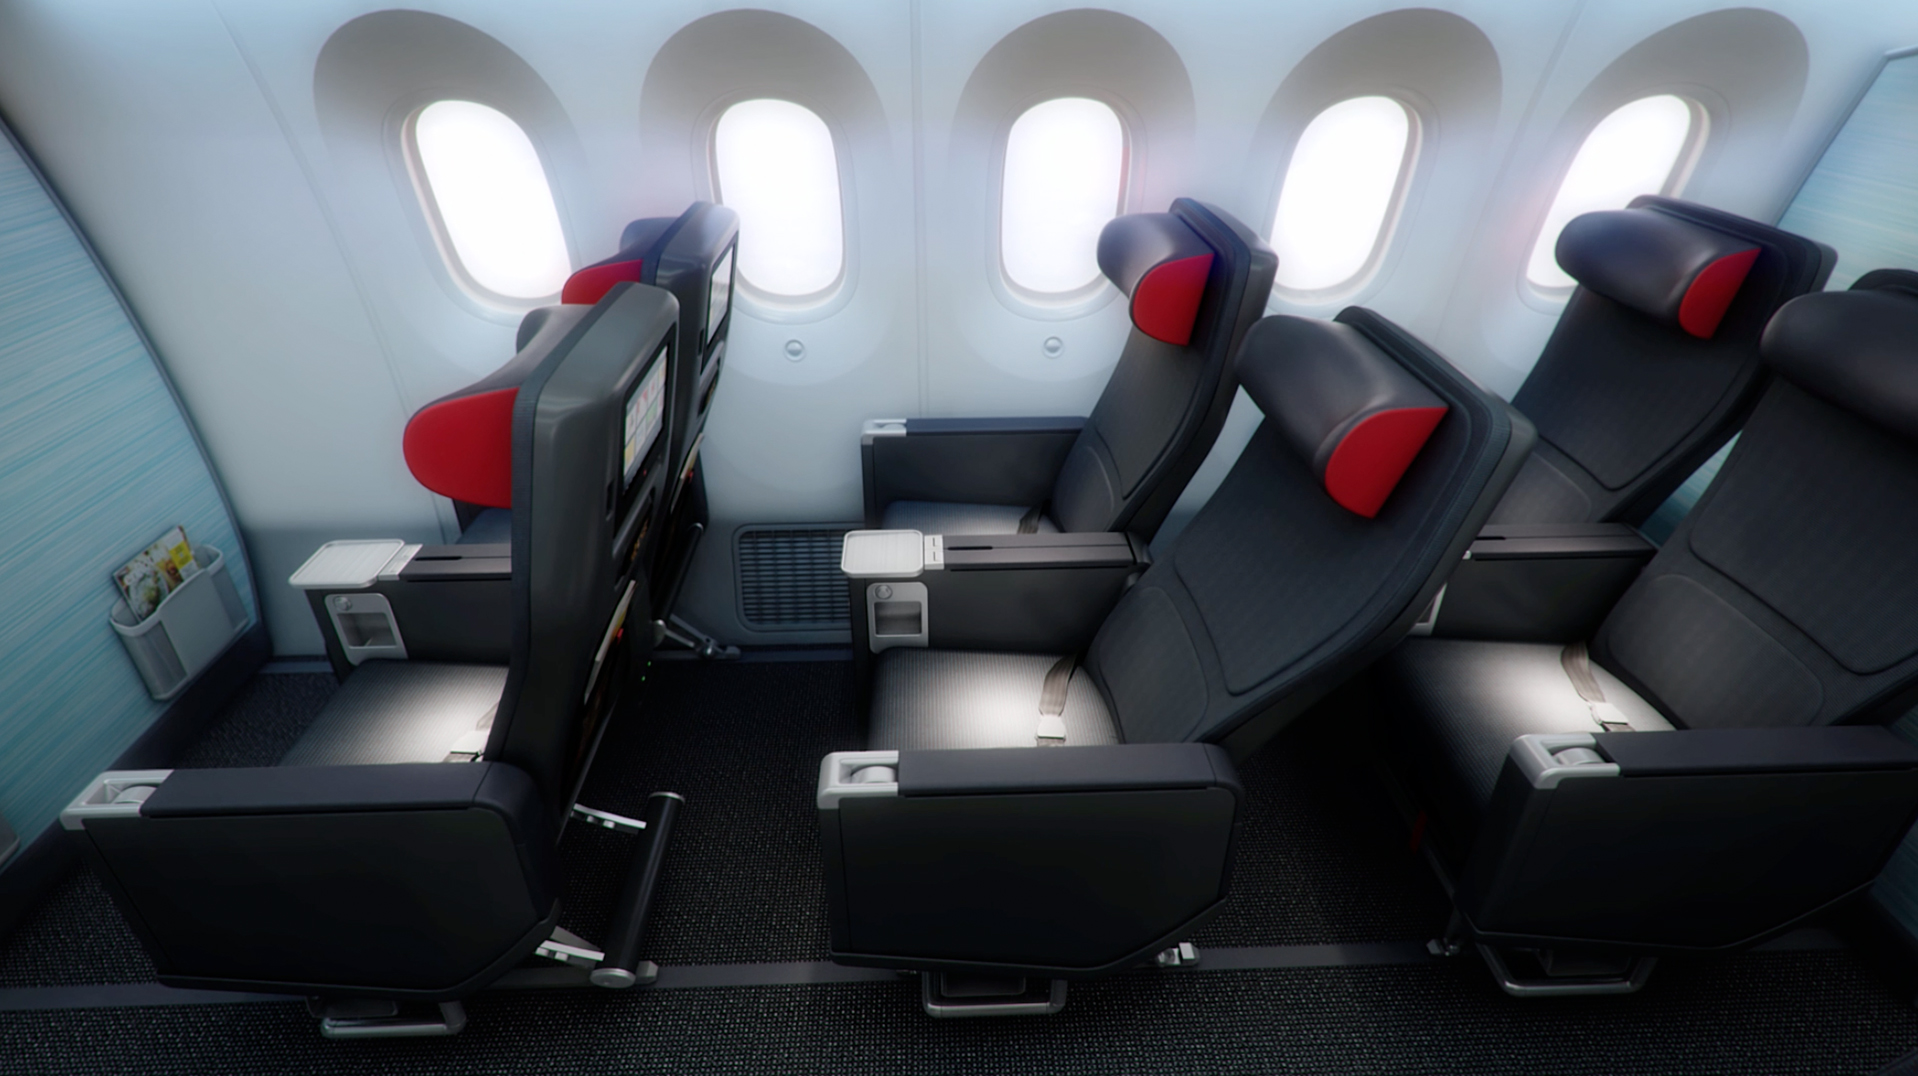 Air canada showcase new 787 interior thedesignair for Interieur avion air canada